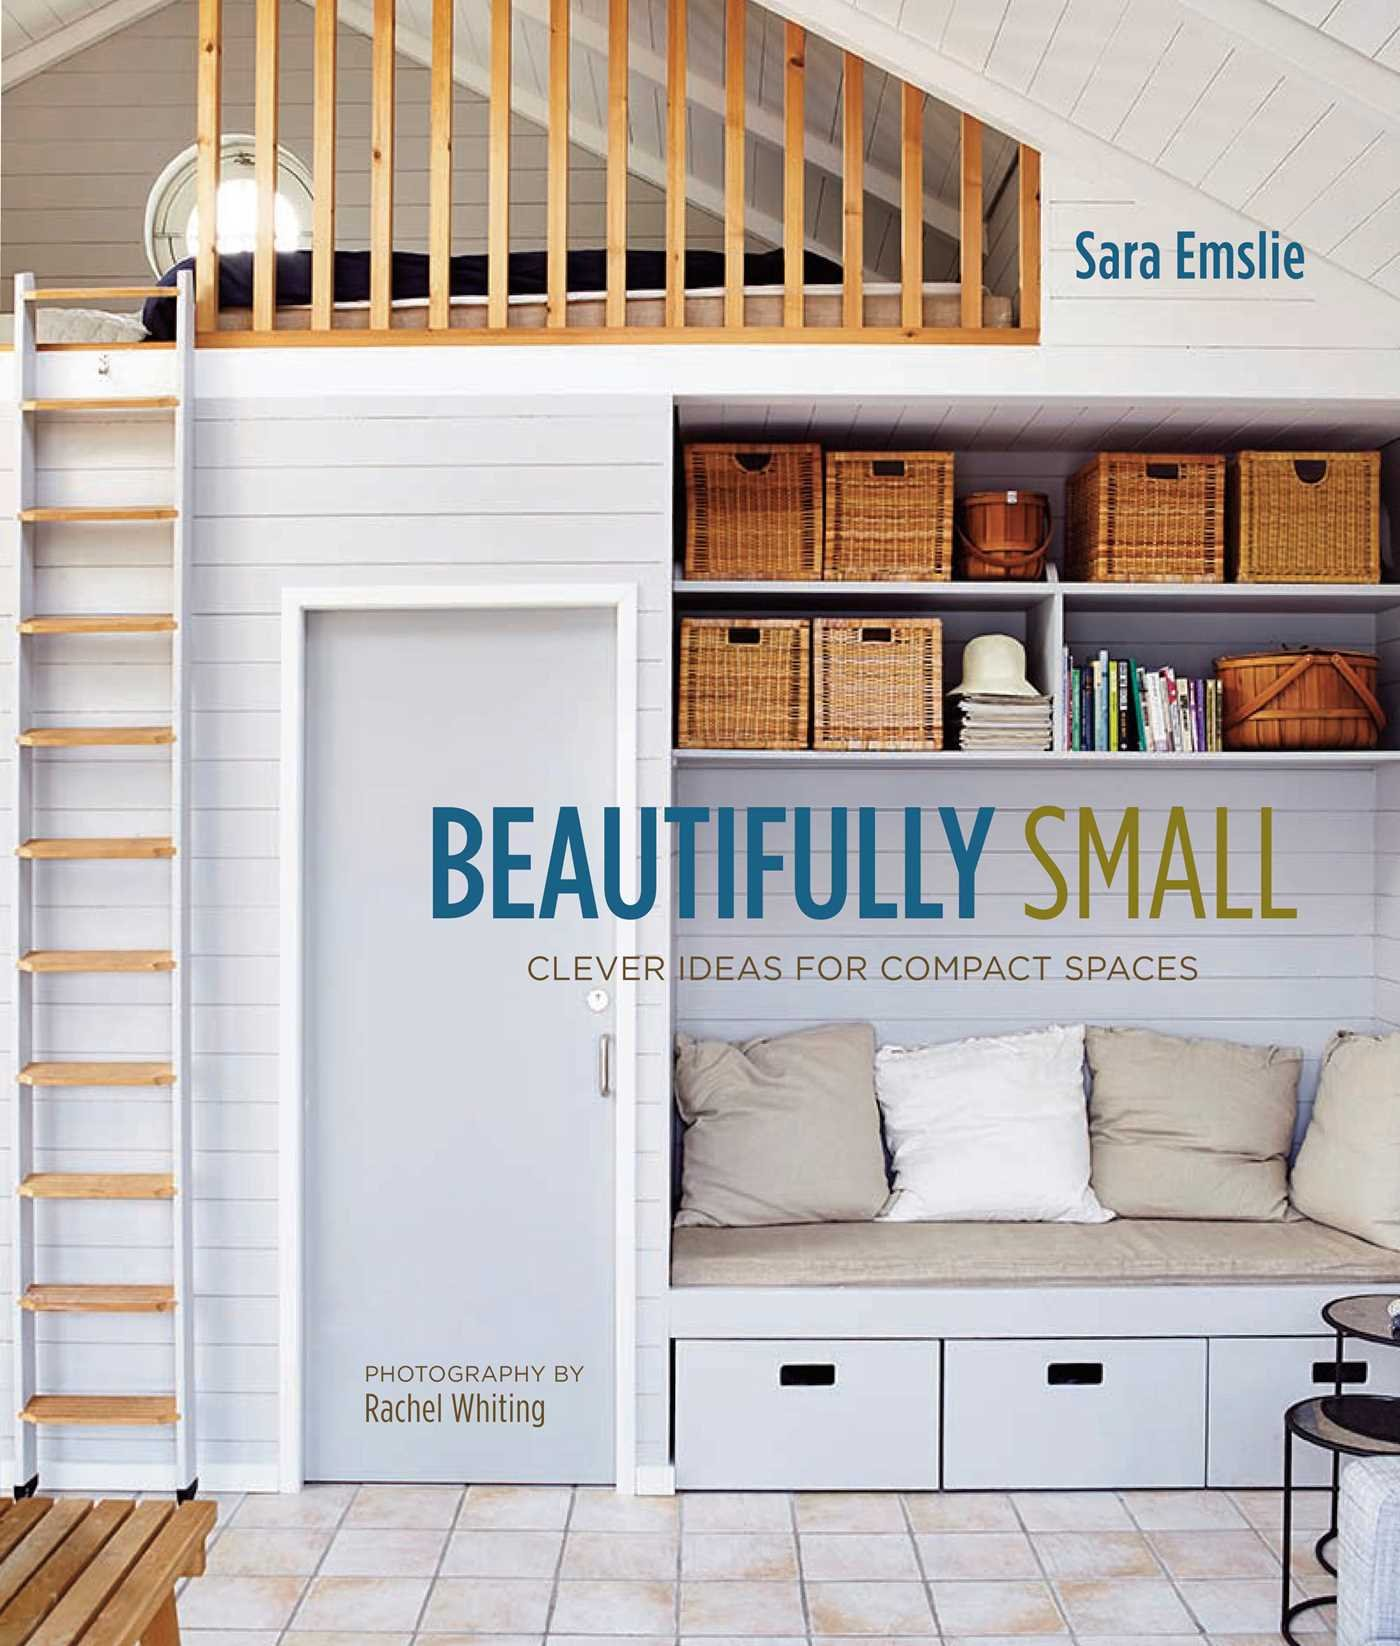 Beautifully Small: Clever Ideas for Compact Spaces